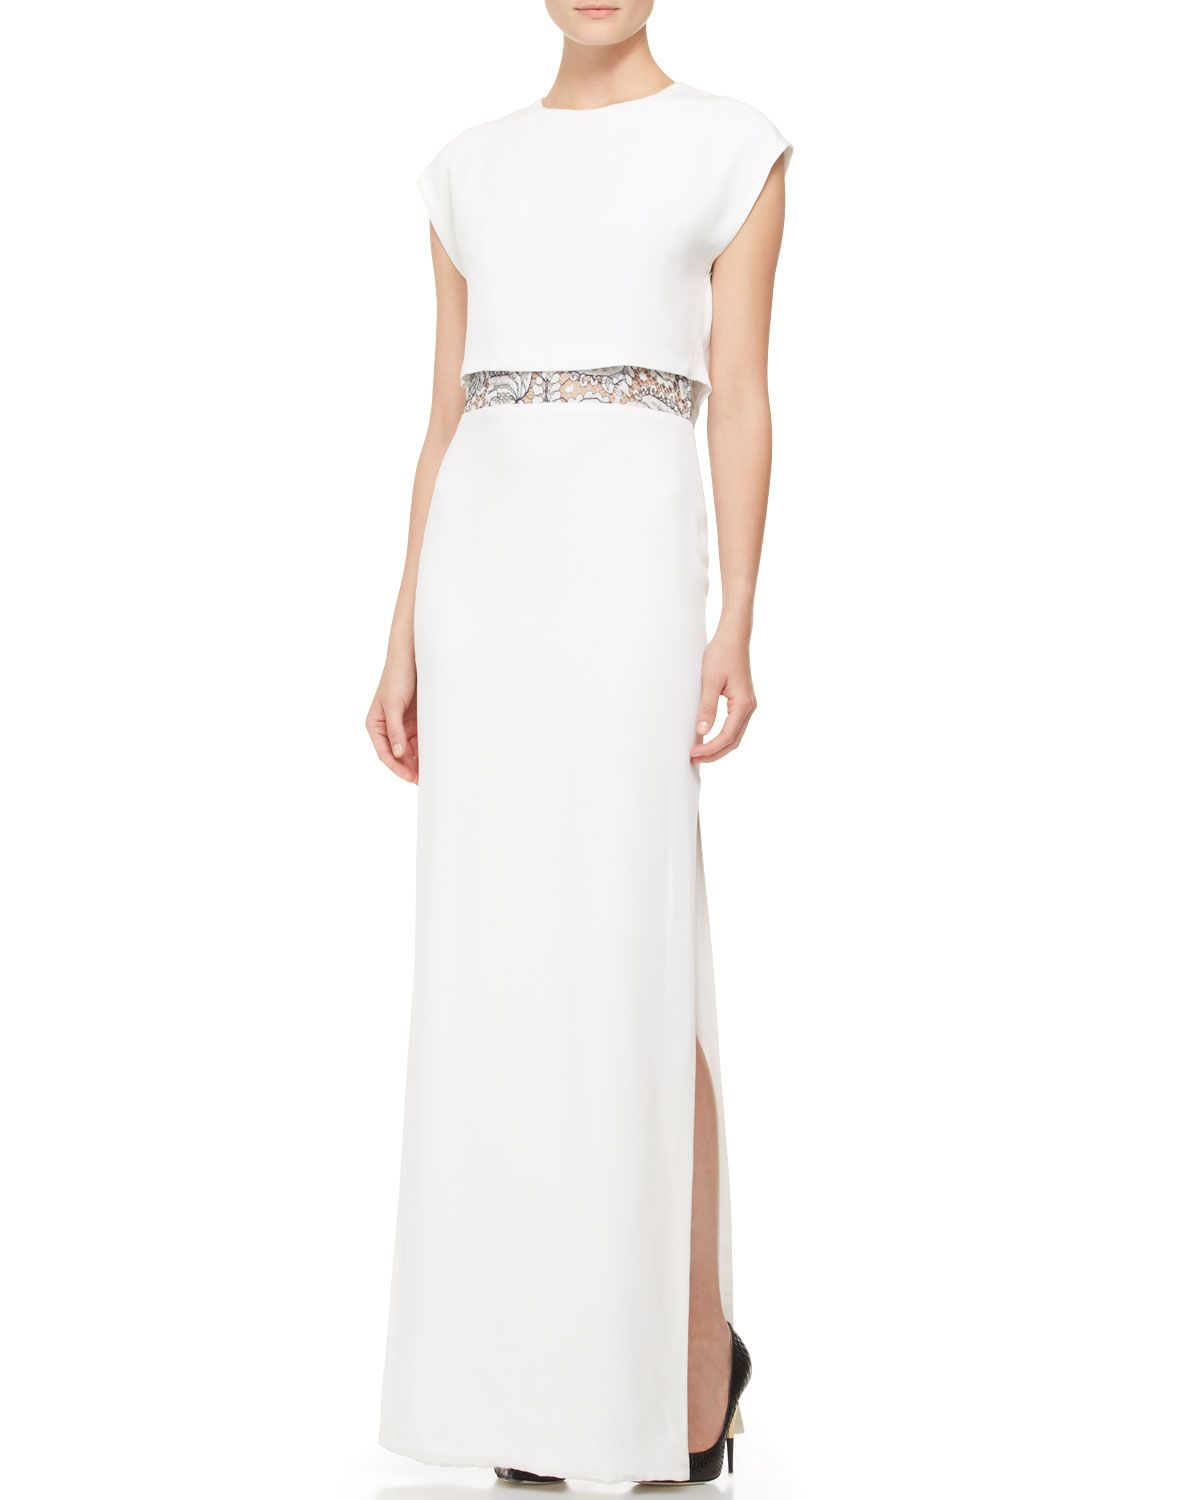 Adam lippes peekaboo lace cap sleeve crepe gown white neiman adam lippes peekaboo lace cap sleeve crepe gown white neiman marcus ombrellifo Image collections